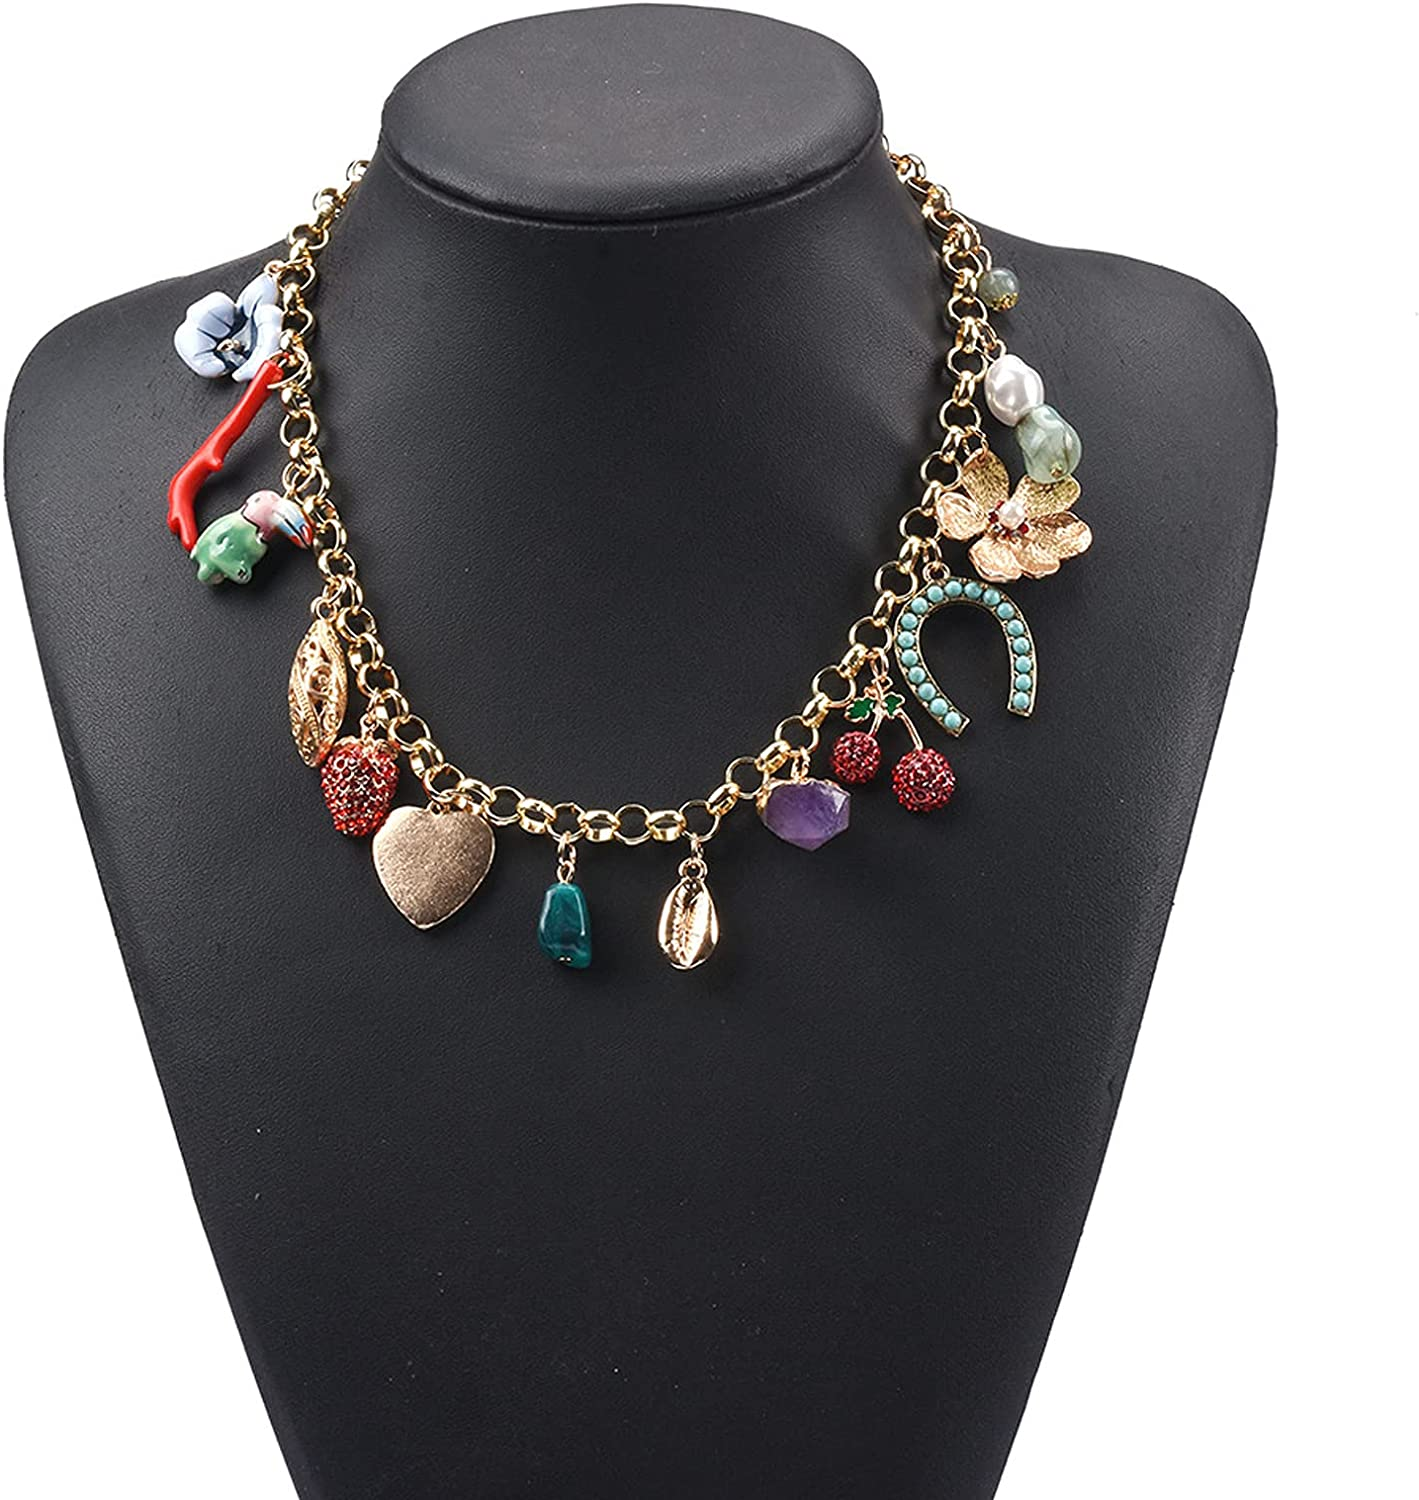 WANZPITS Bohemian Flower Alloy Pendant Necklace for Women Handmade Fashion Casual Chunky Costume Collar Necklace Jewelry for Women,4